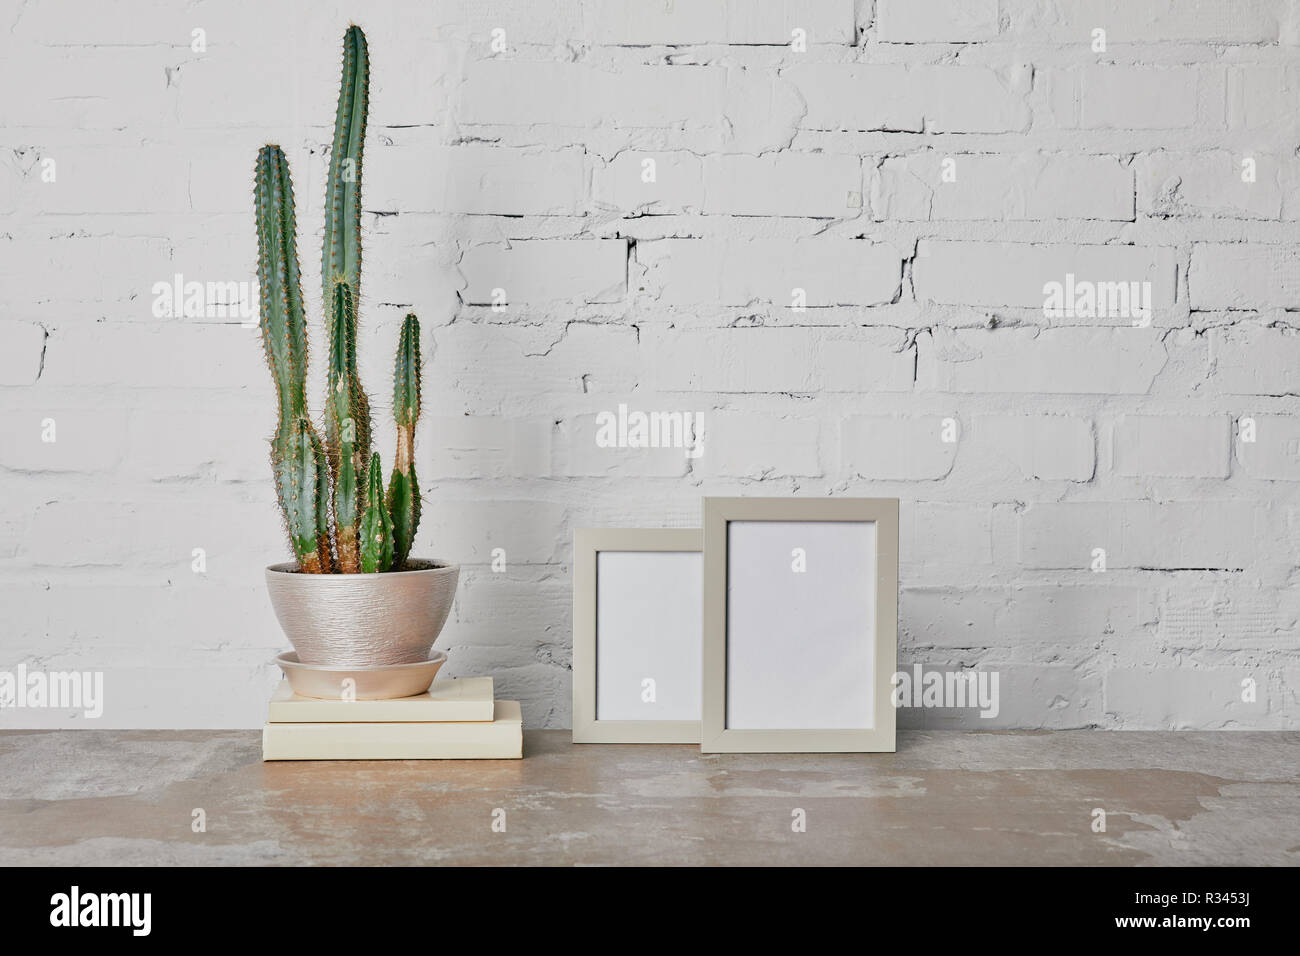 Cactus plant on books and photo frames on white brick wall background - Stock Image